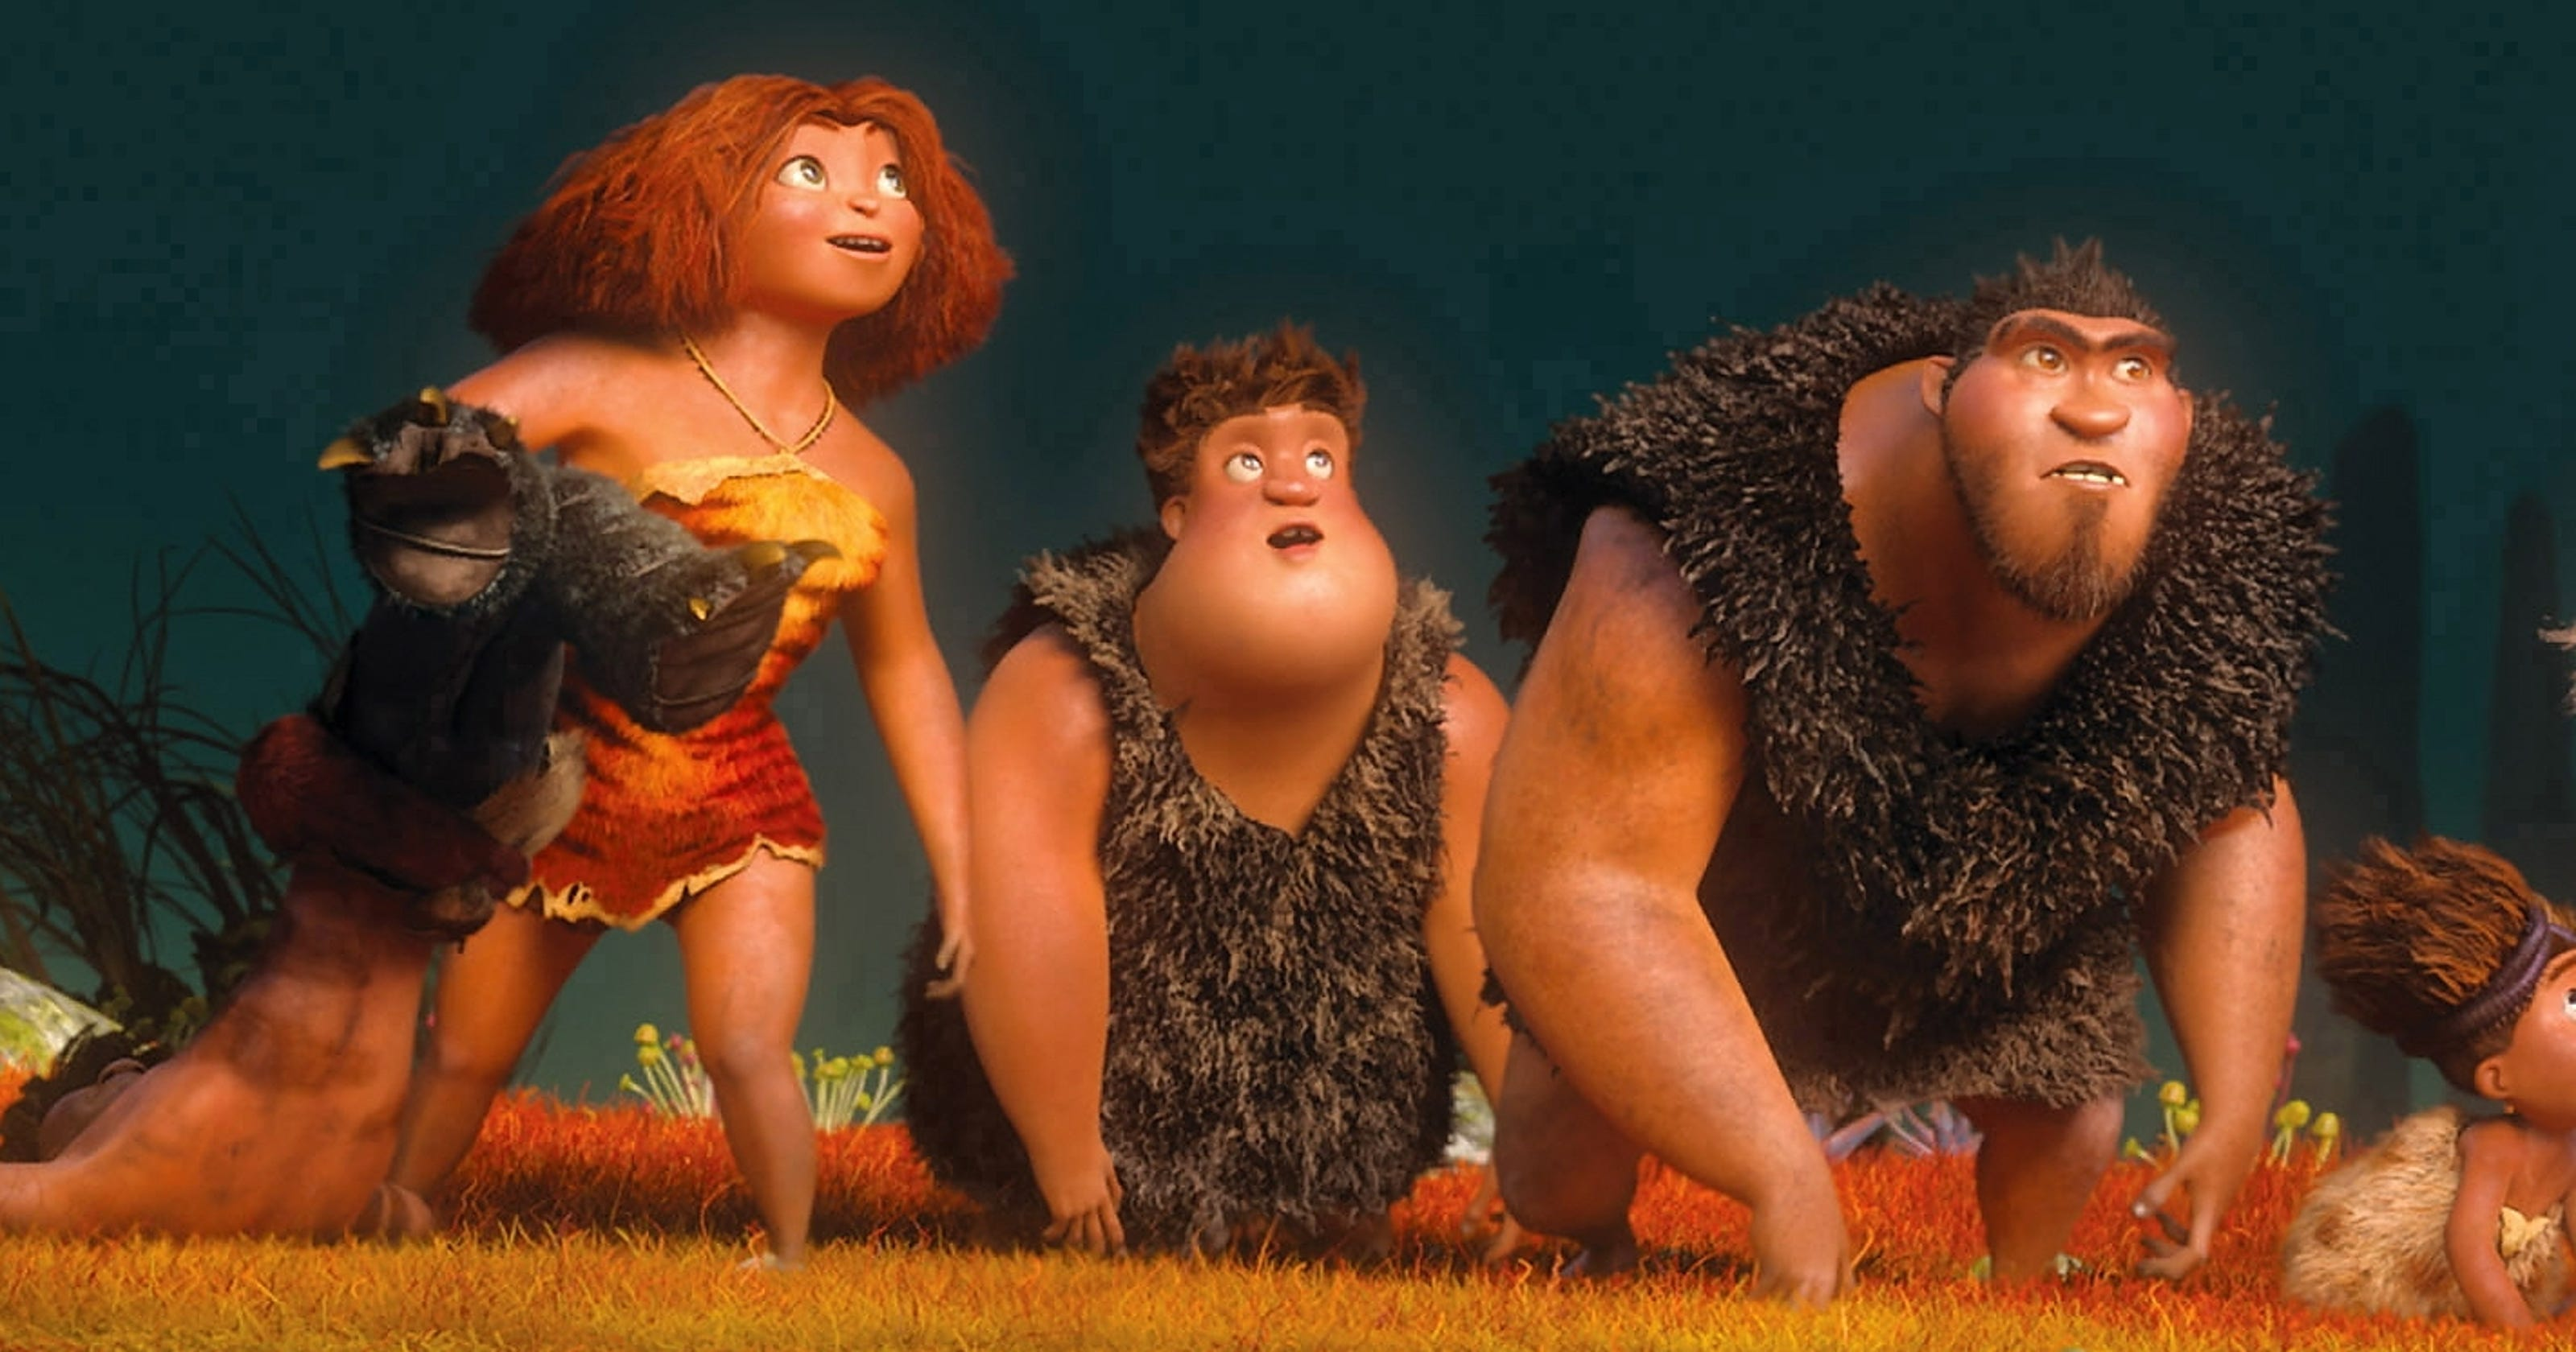 the croods hunts down humor gathers great talent